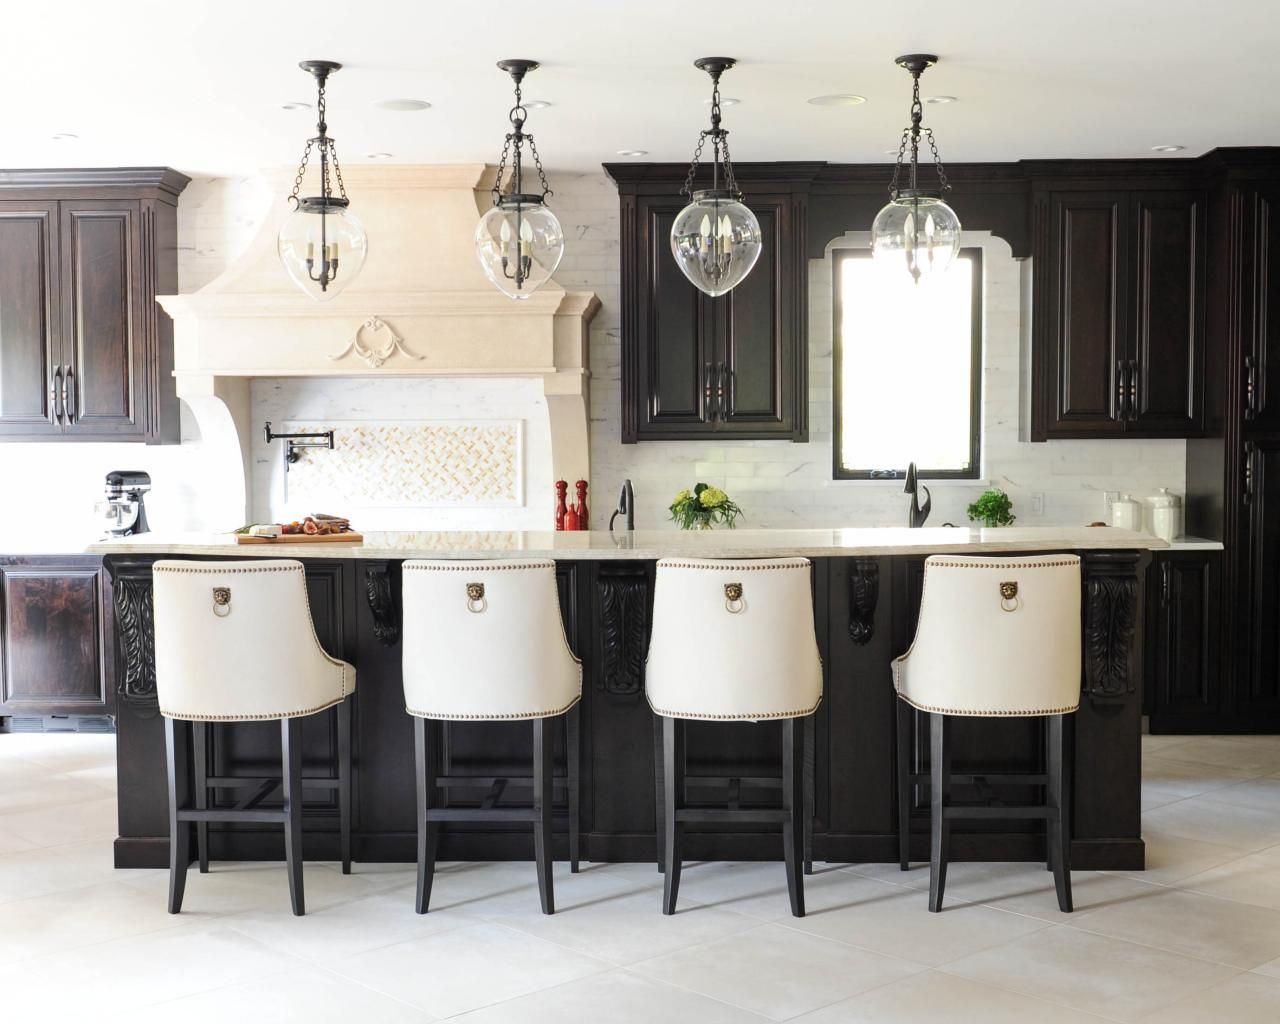 Four Glass Pendants Provide Task Lighting Above A Spacious Two Tiered Island In This Custom